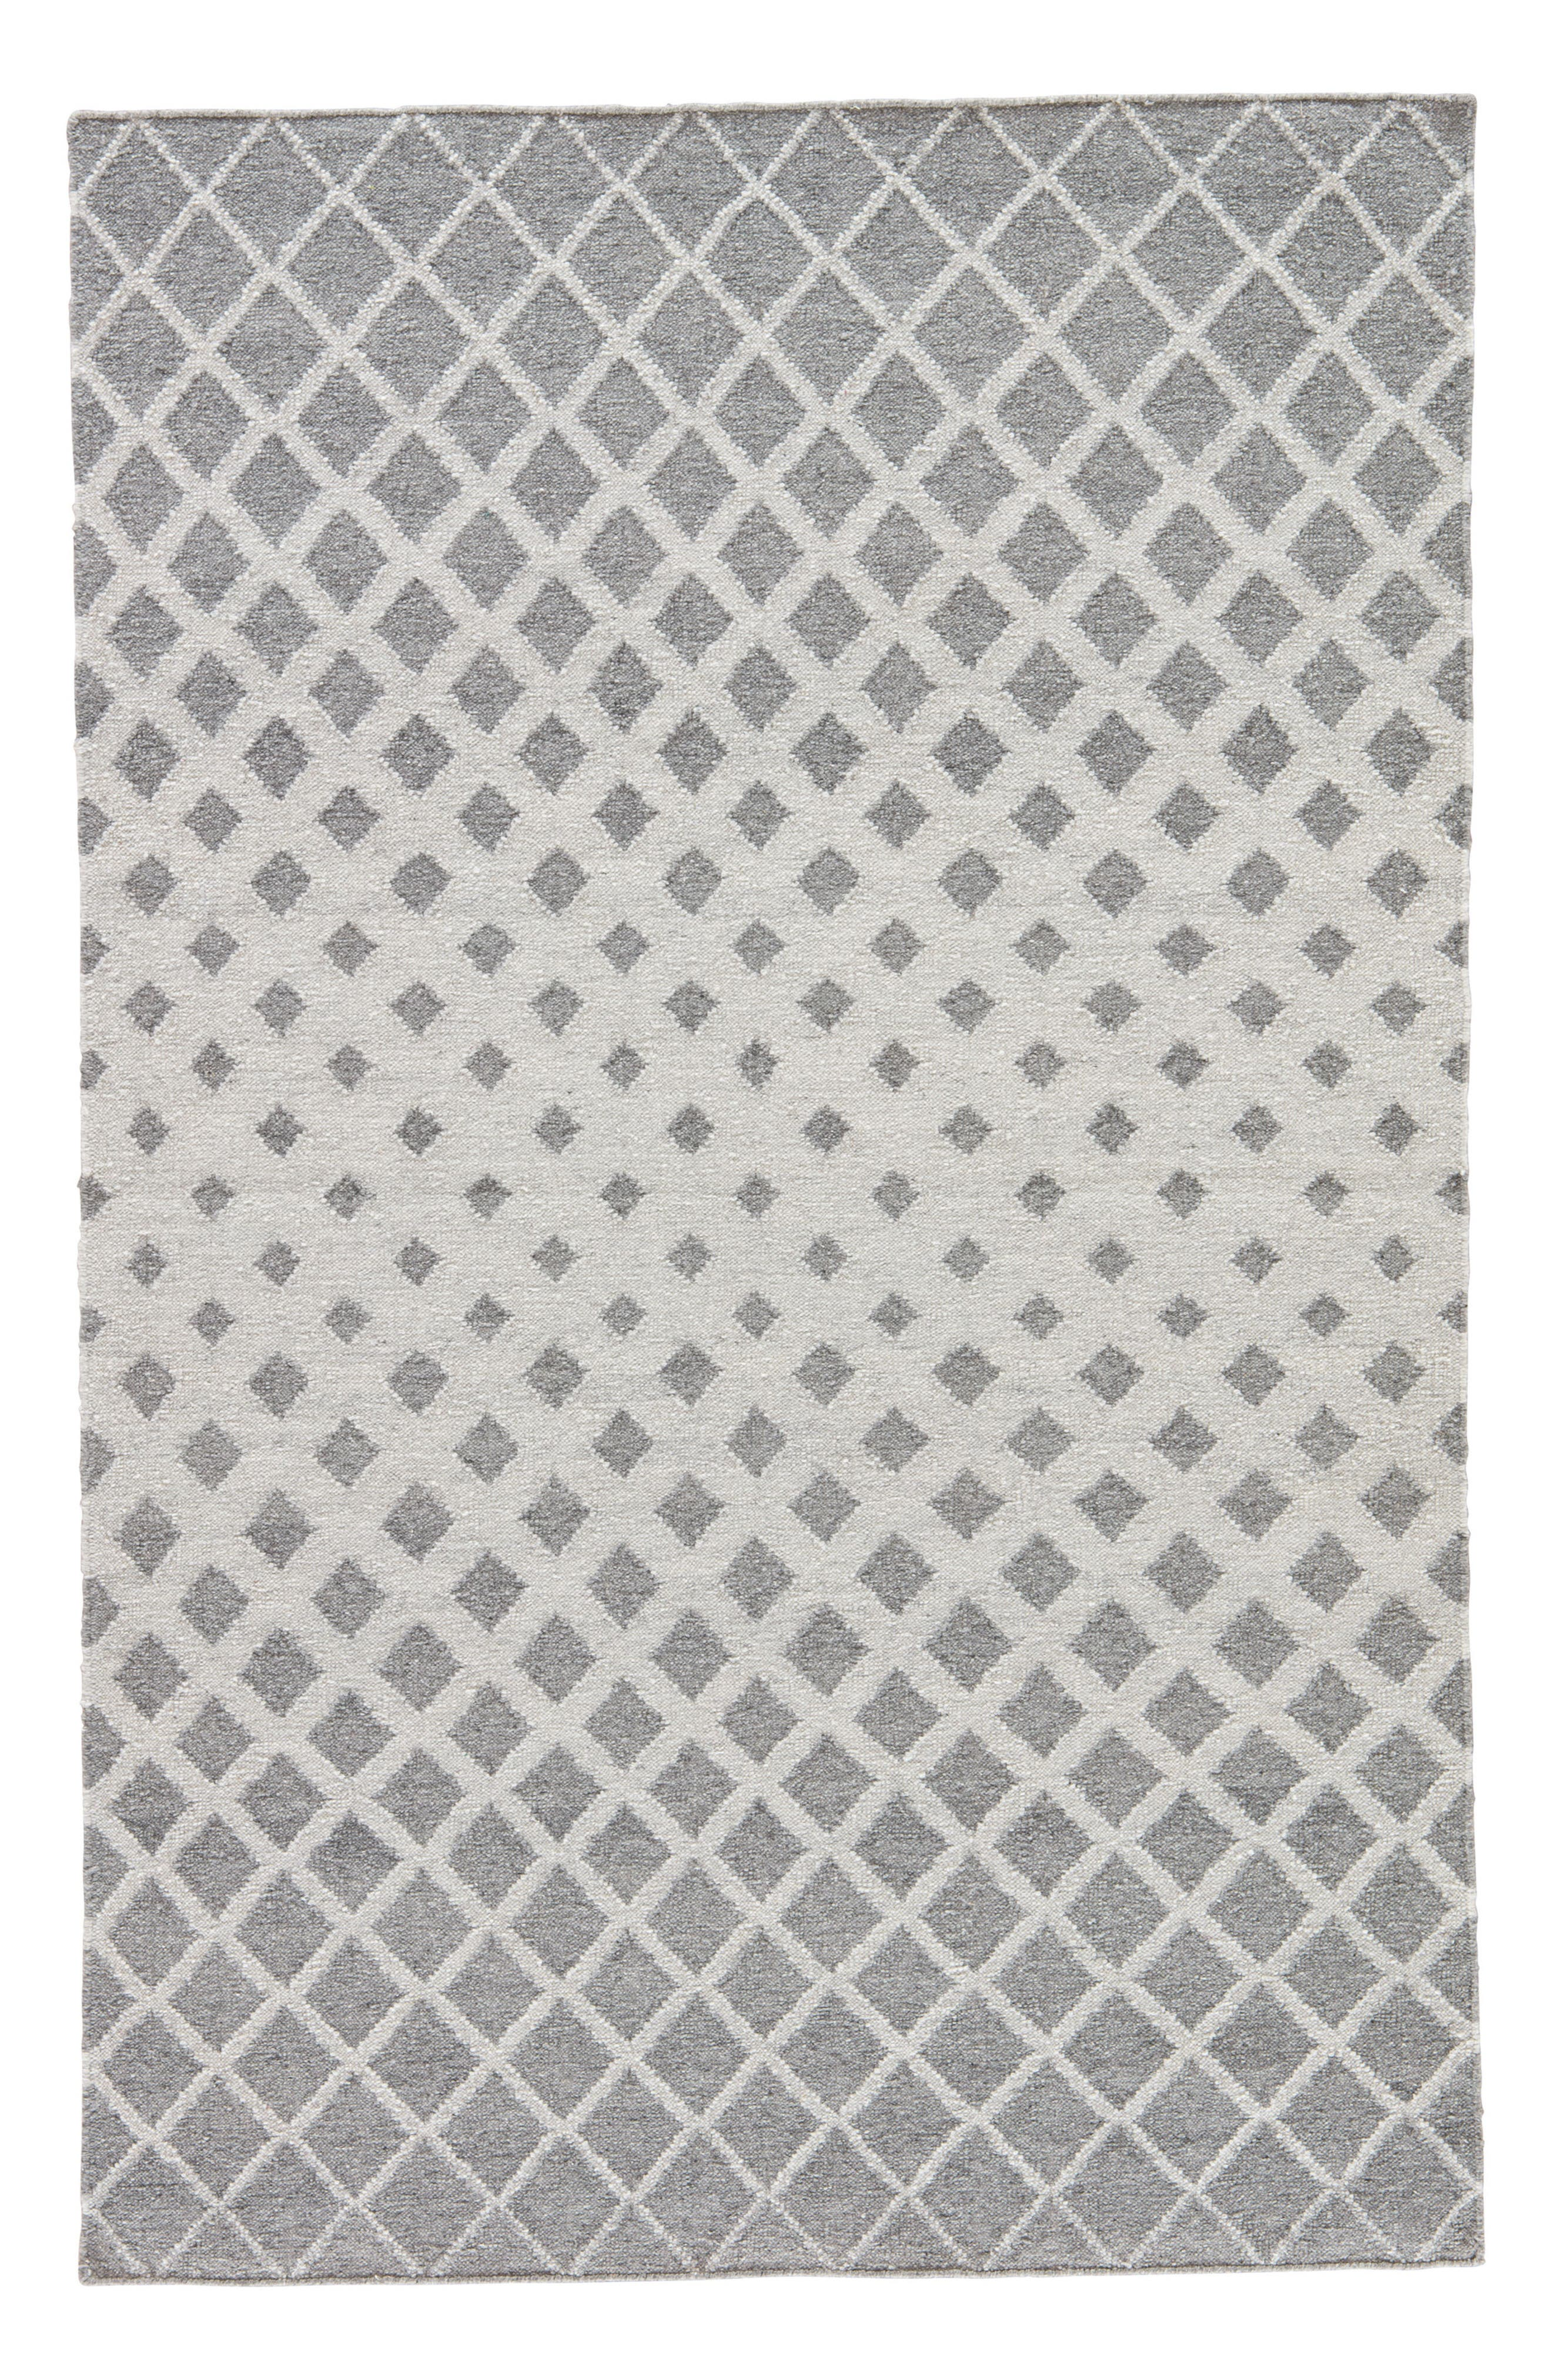 Pyramid Blocks Rug,                         Main,                         color, 099